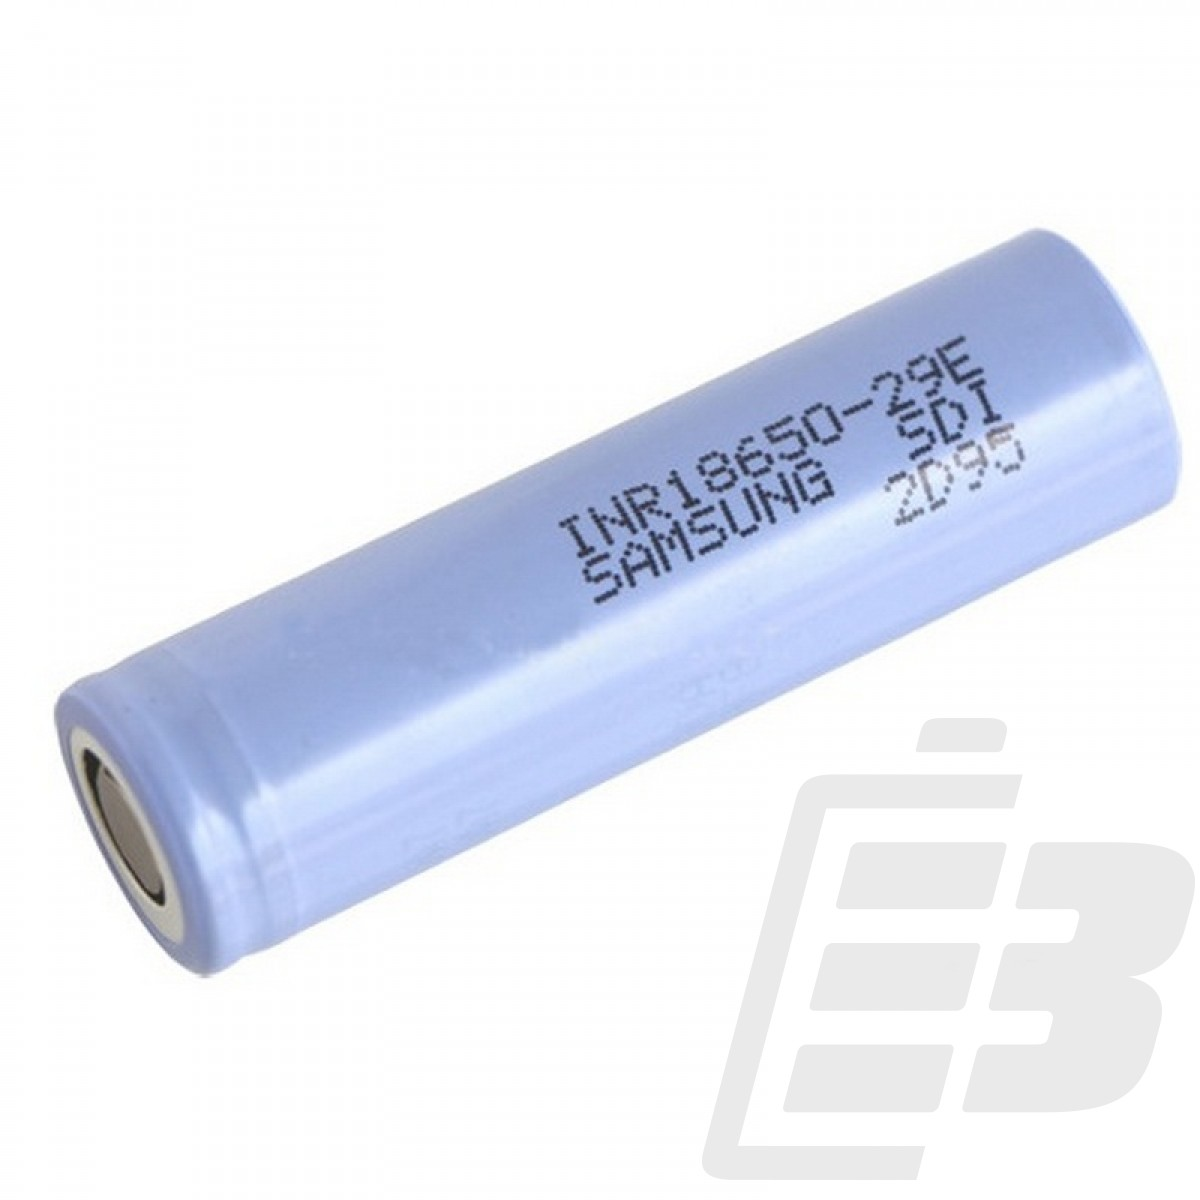 Samsung INR18650-29E battery 18650 2900mah 1